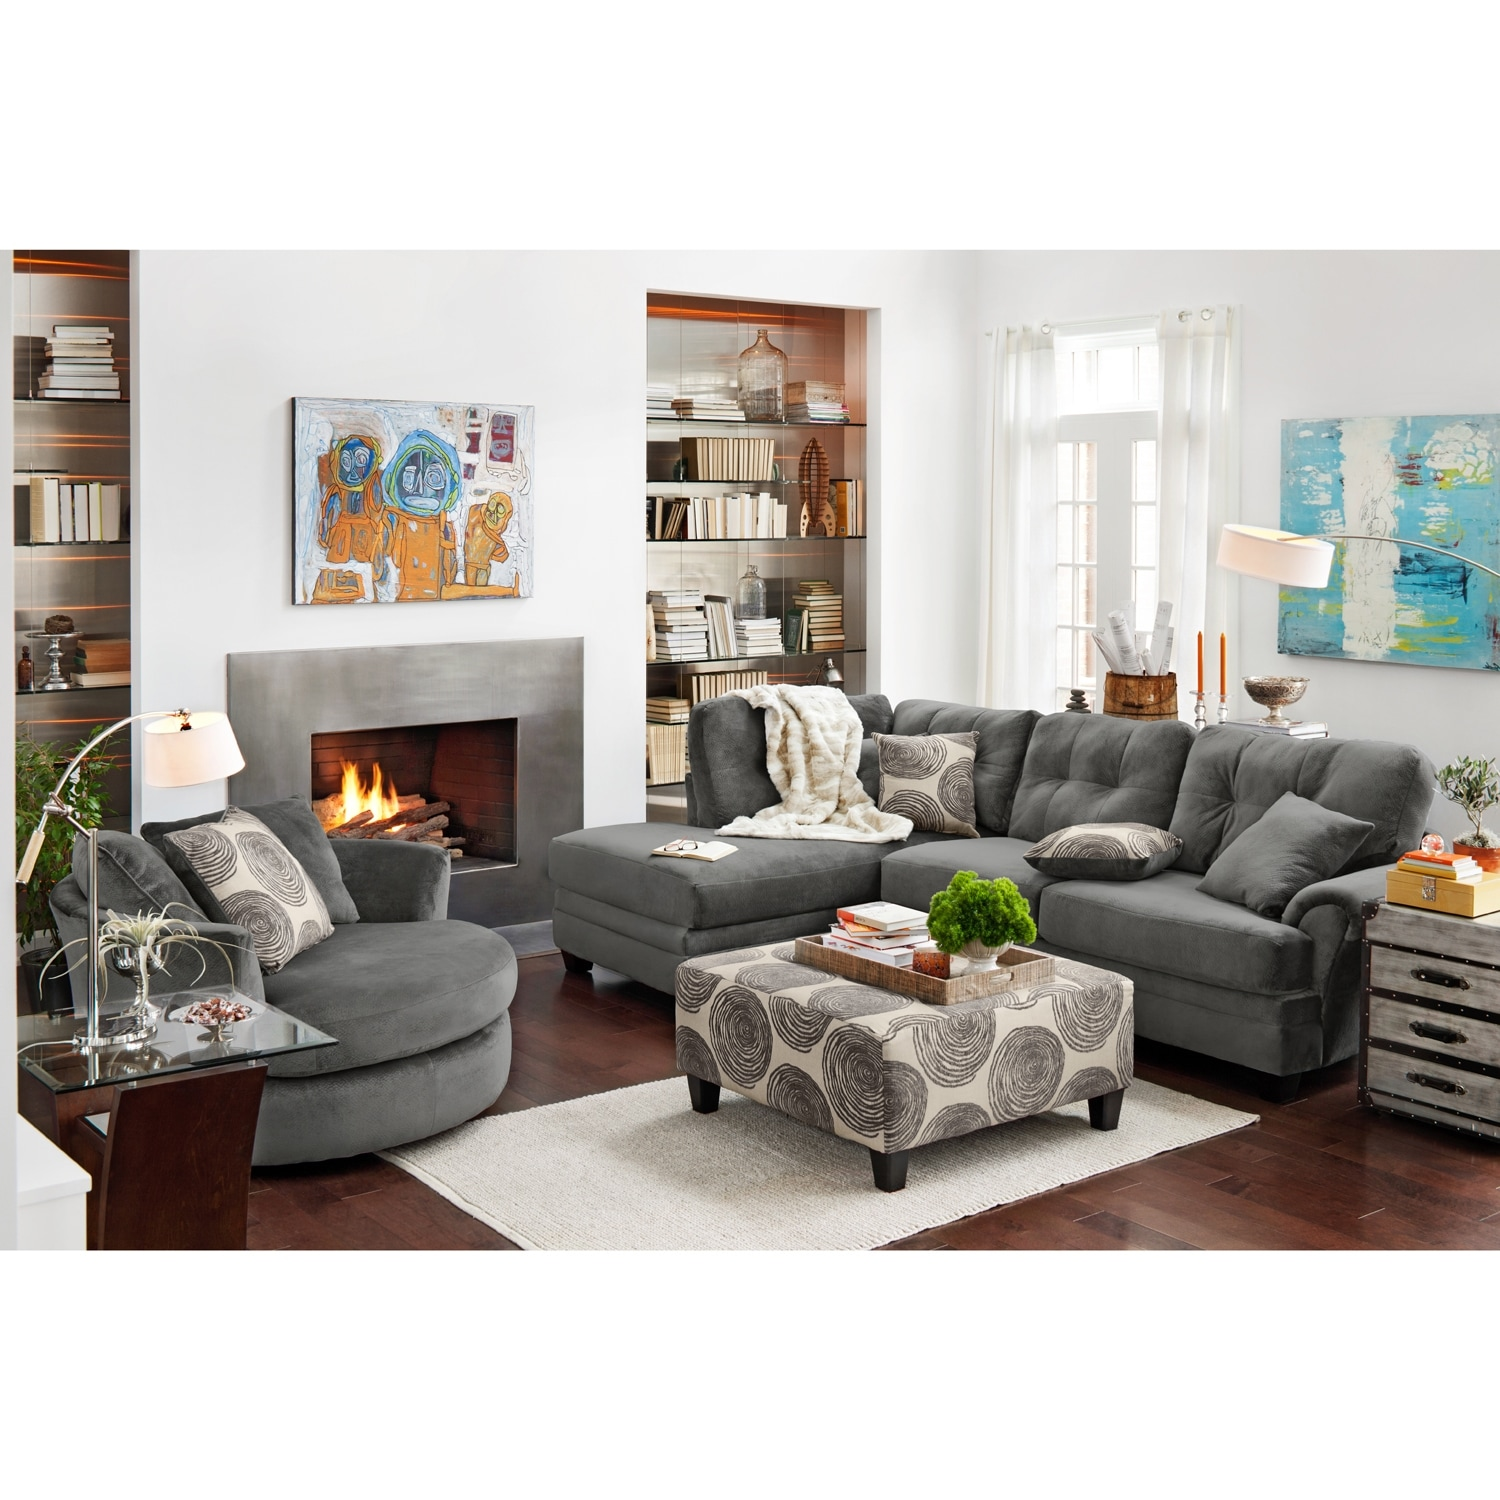 Ii 2 pc sectional and swivel chair american signature furniture - Click To Change Image